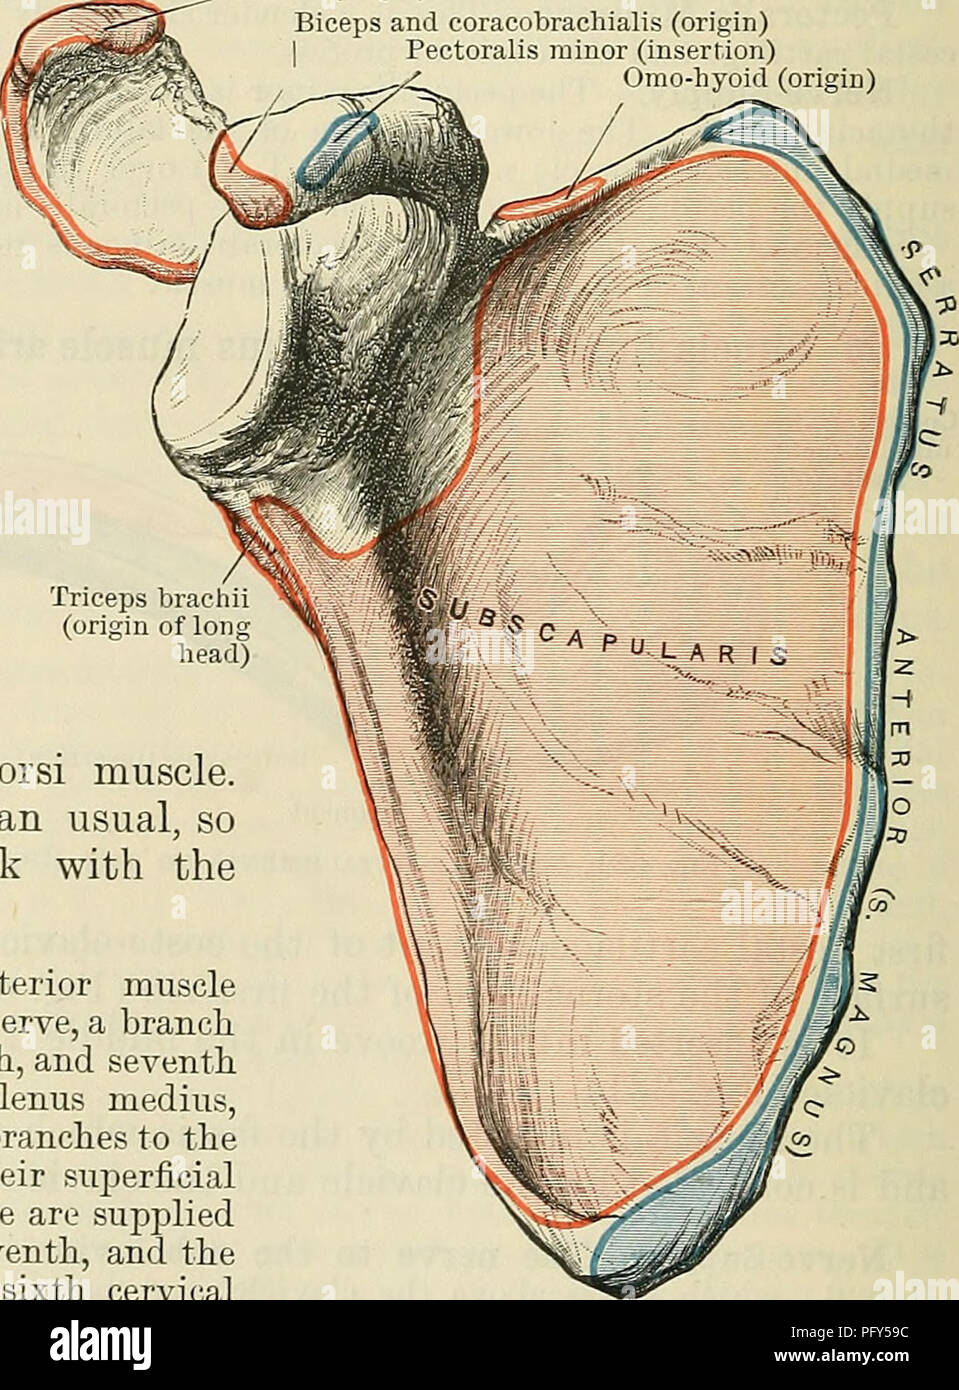 hight resolution of the sternoclavicularis is a small separate slip rarely present extending beneath the pector alis major from the upper part of the sternum